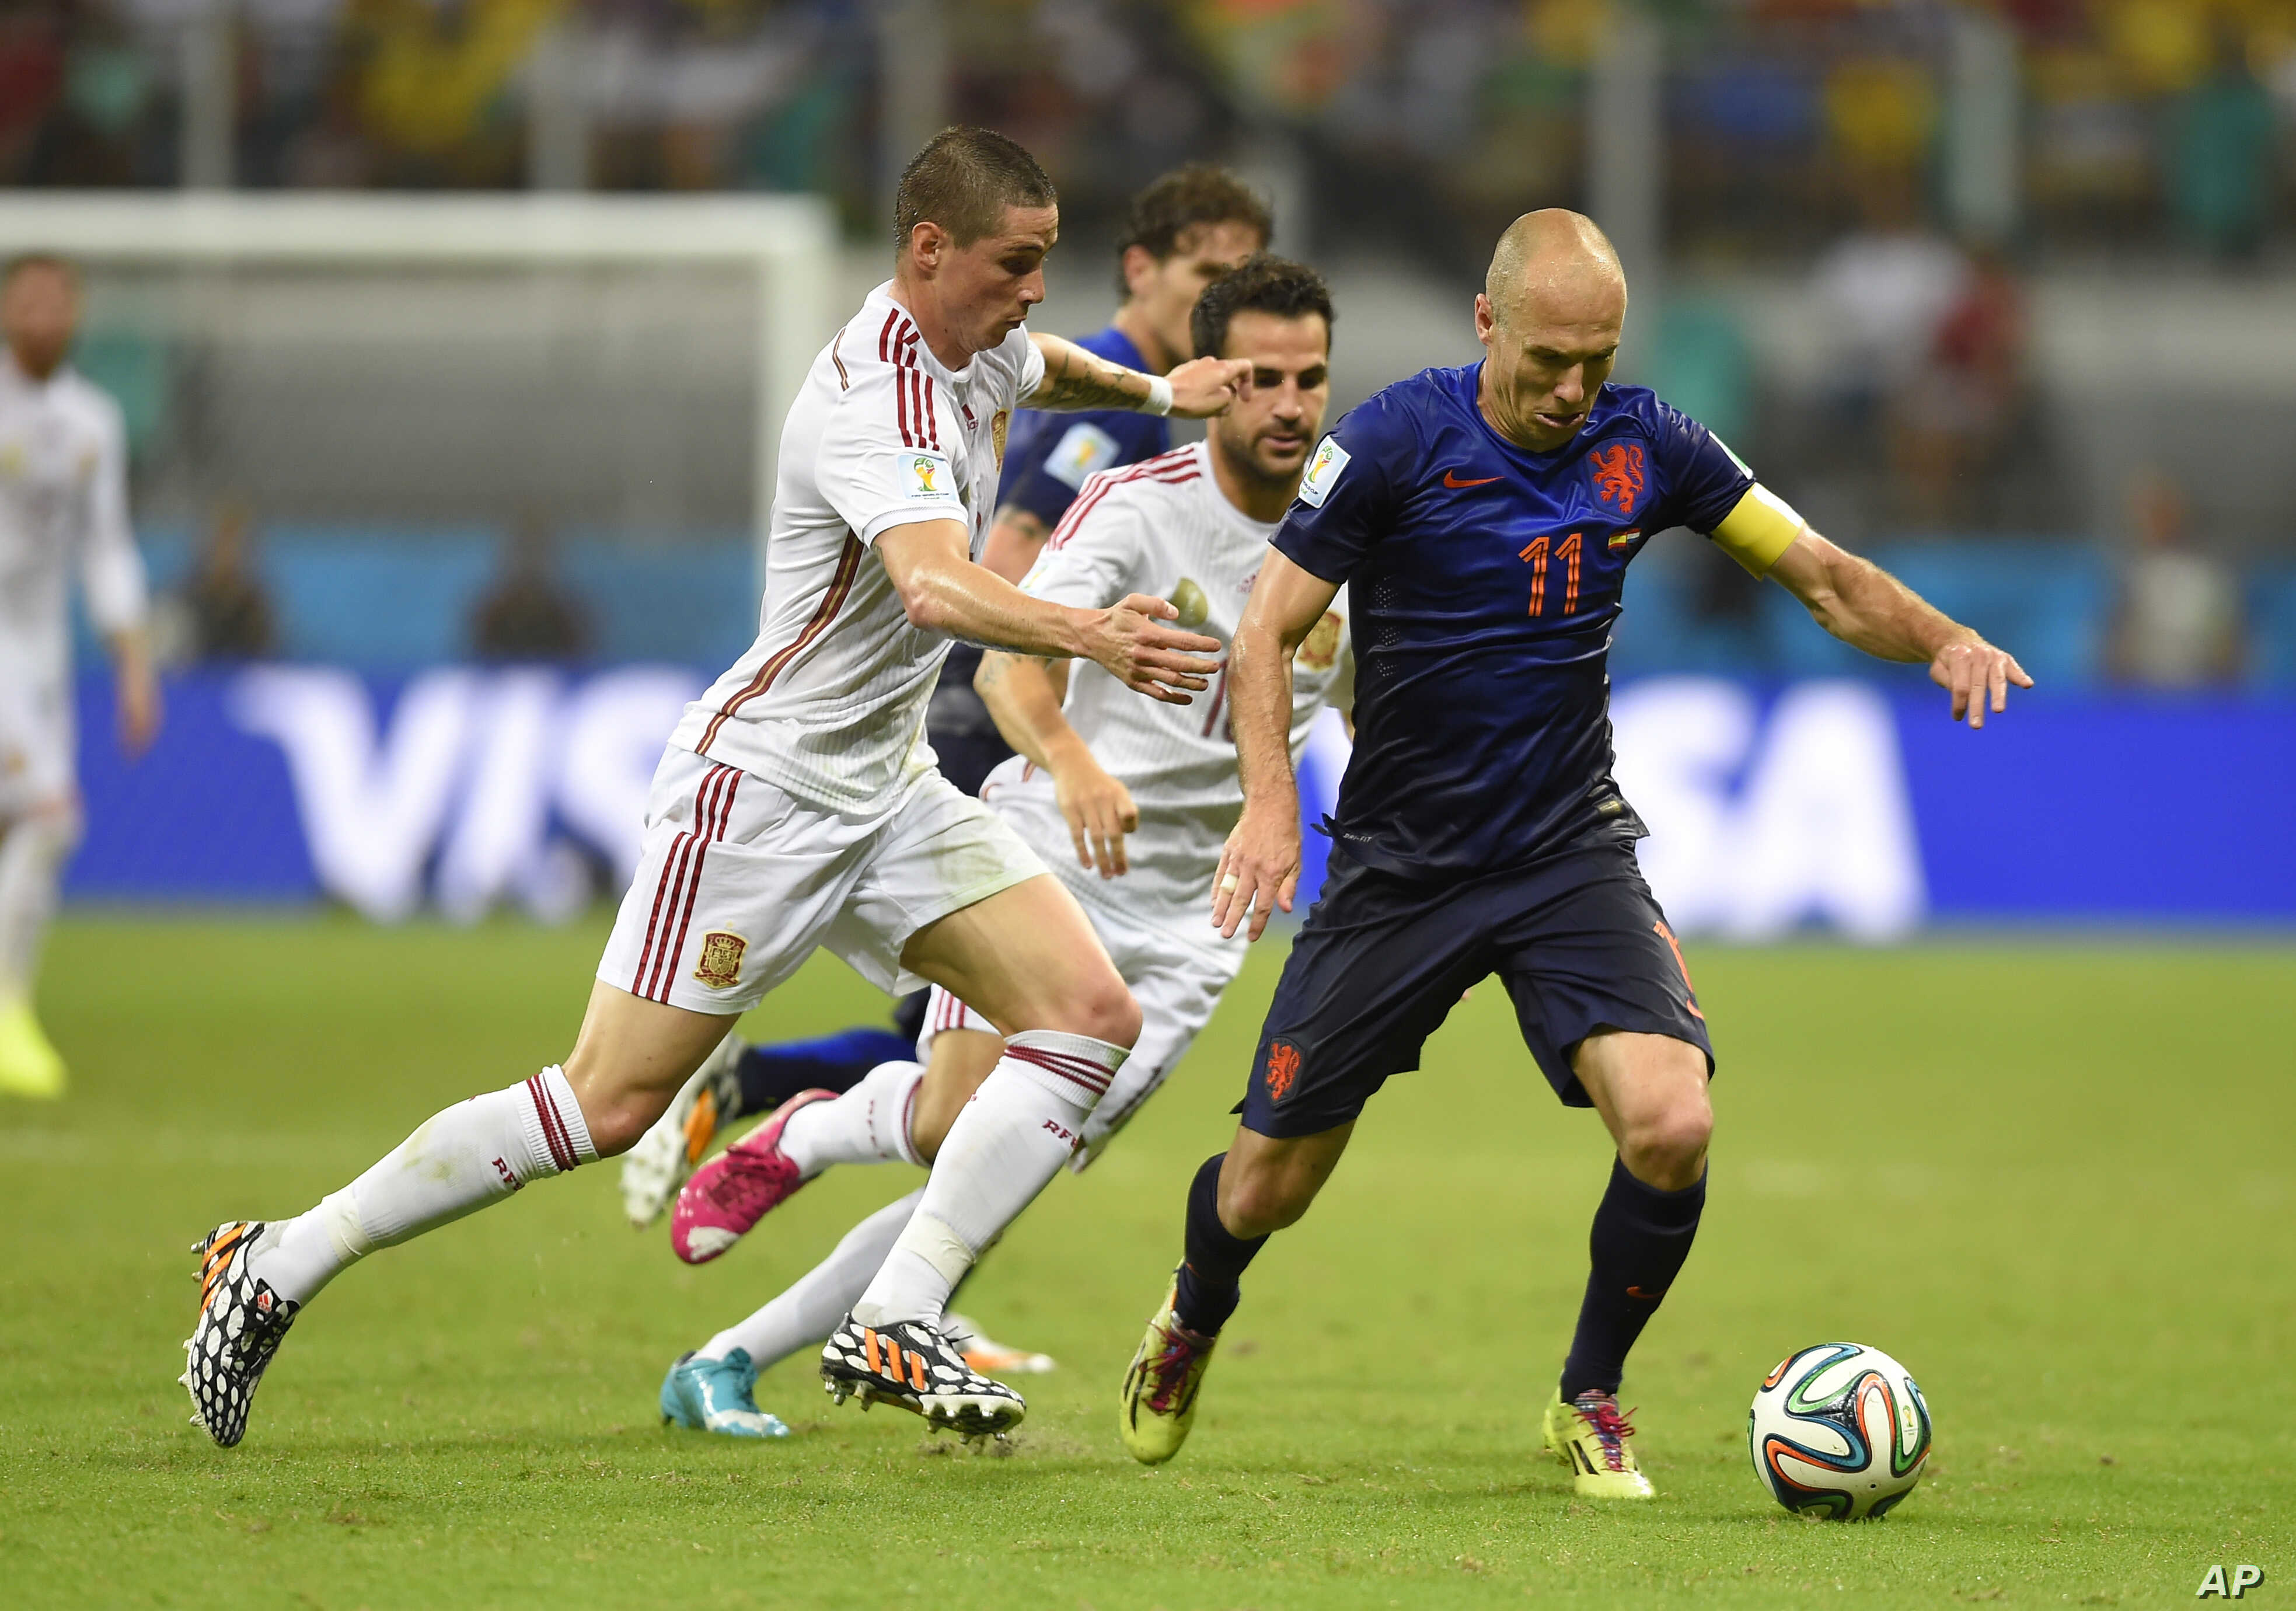 Netherlands' Arjen Robben, right, is challenged by Spain's Fernando Torres during the World Cup match between Spain and the Netherlands, Friday, June 13, 2014.